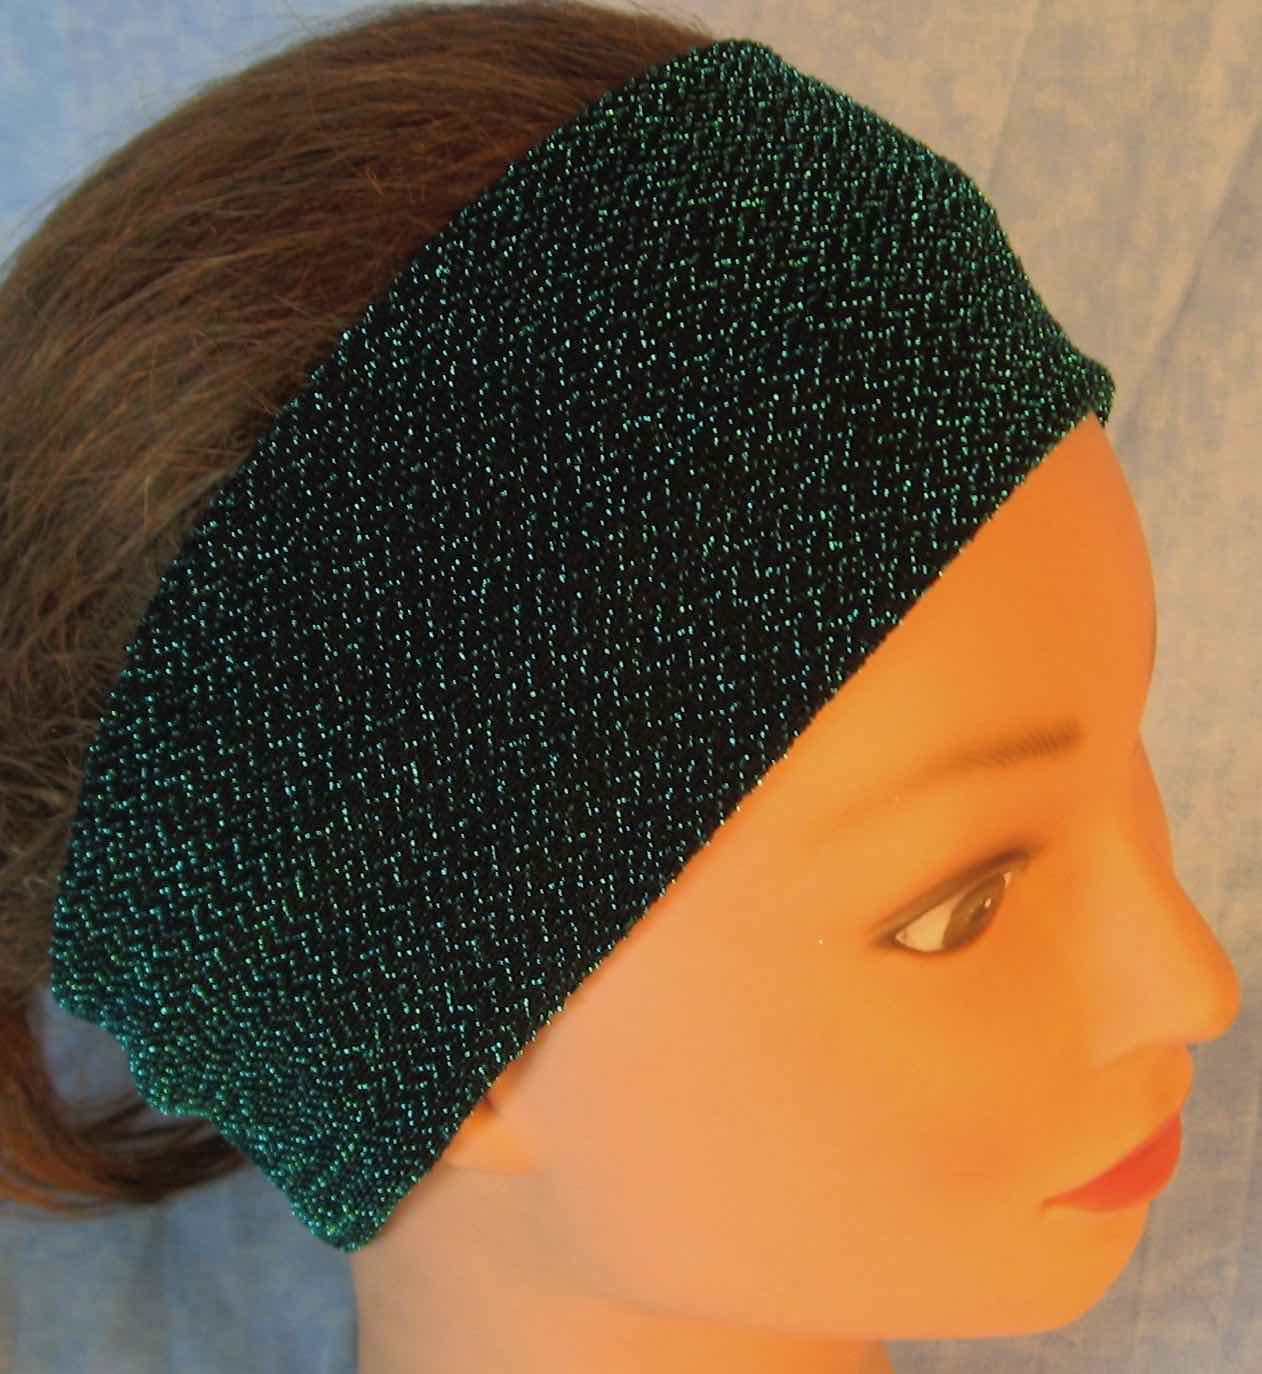 Headband-Black with Teal V's Knit-Adult S